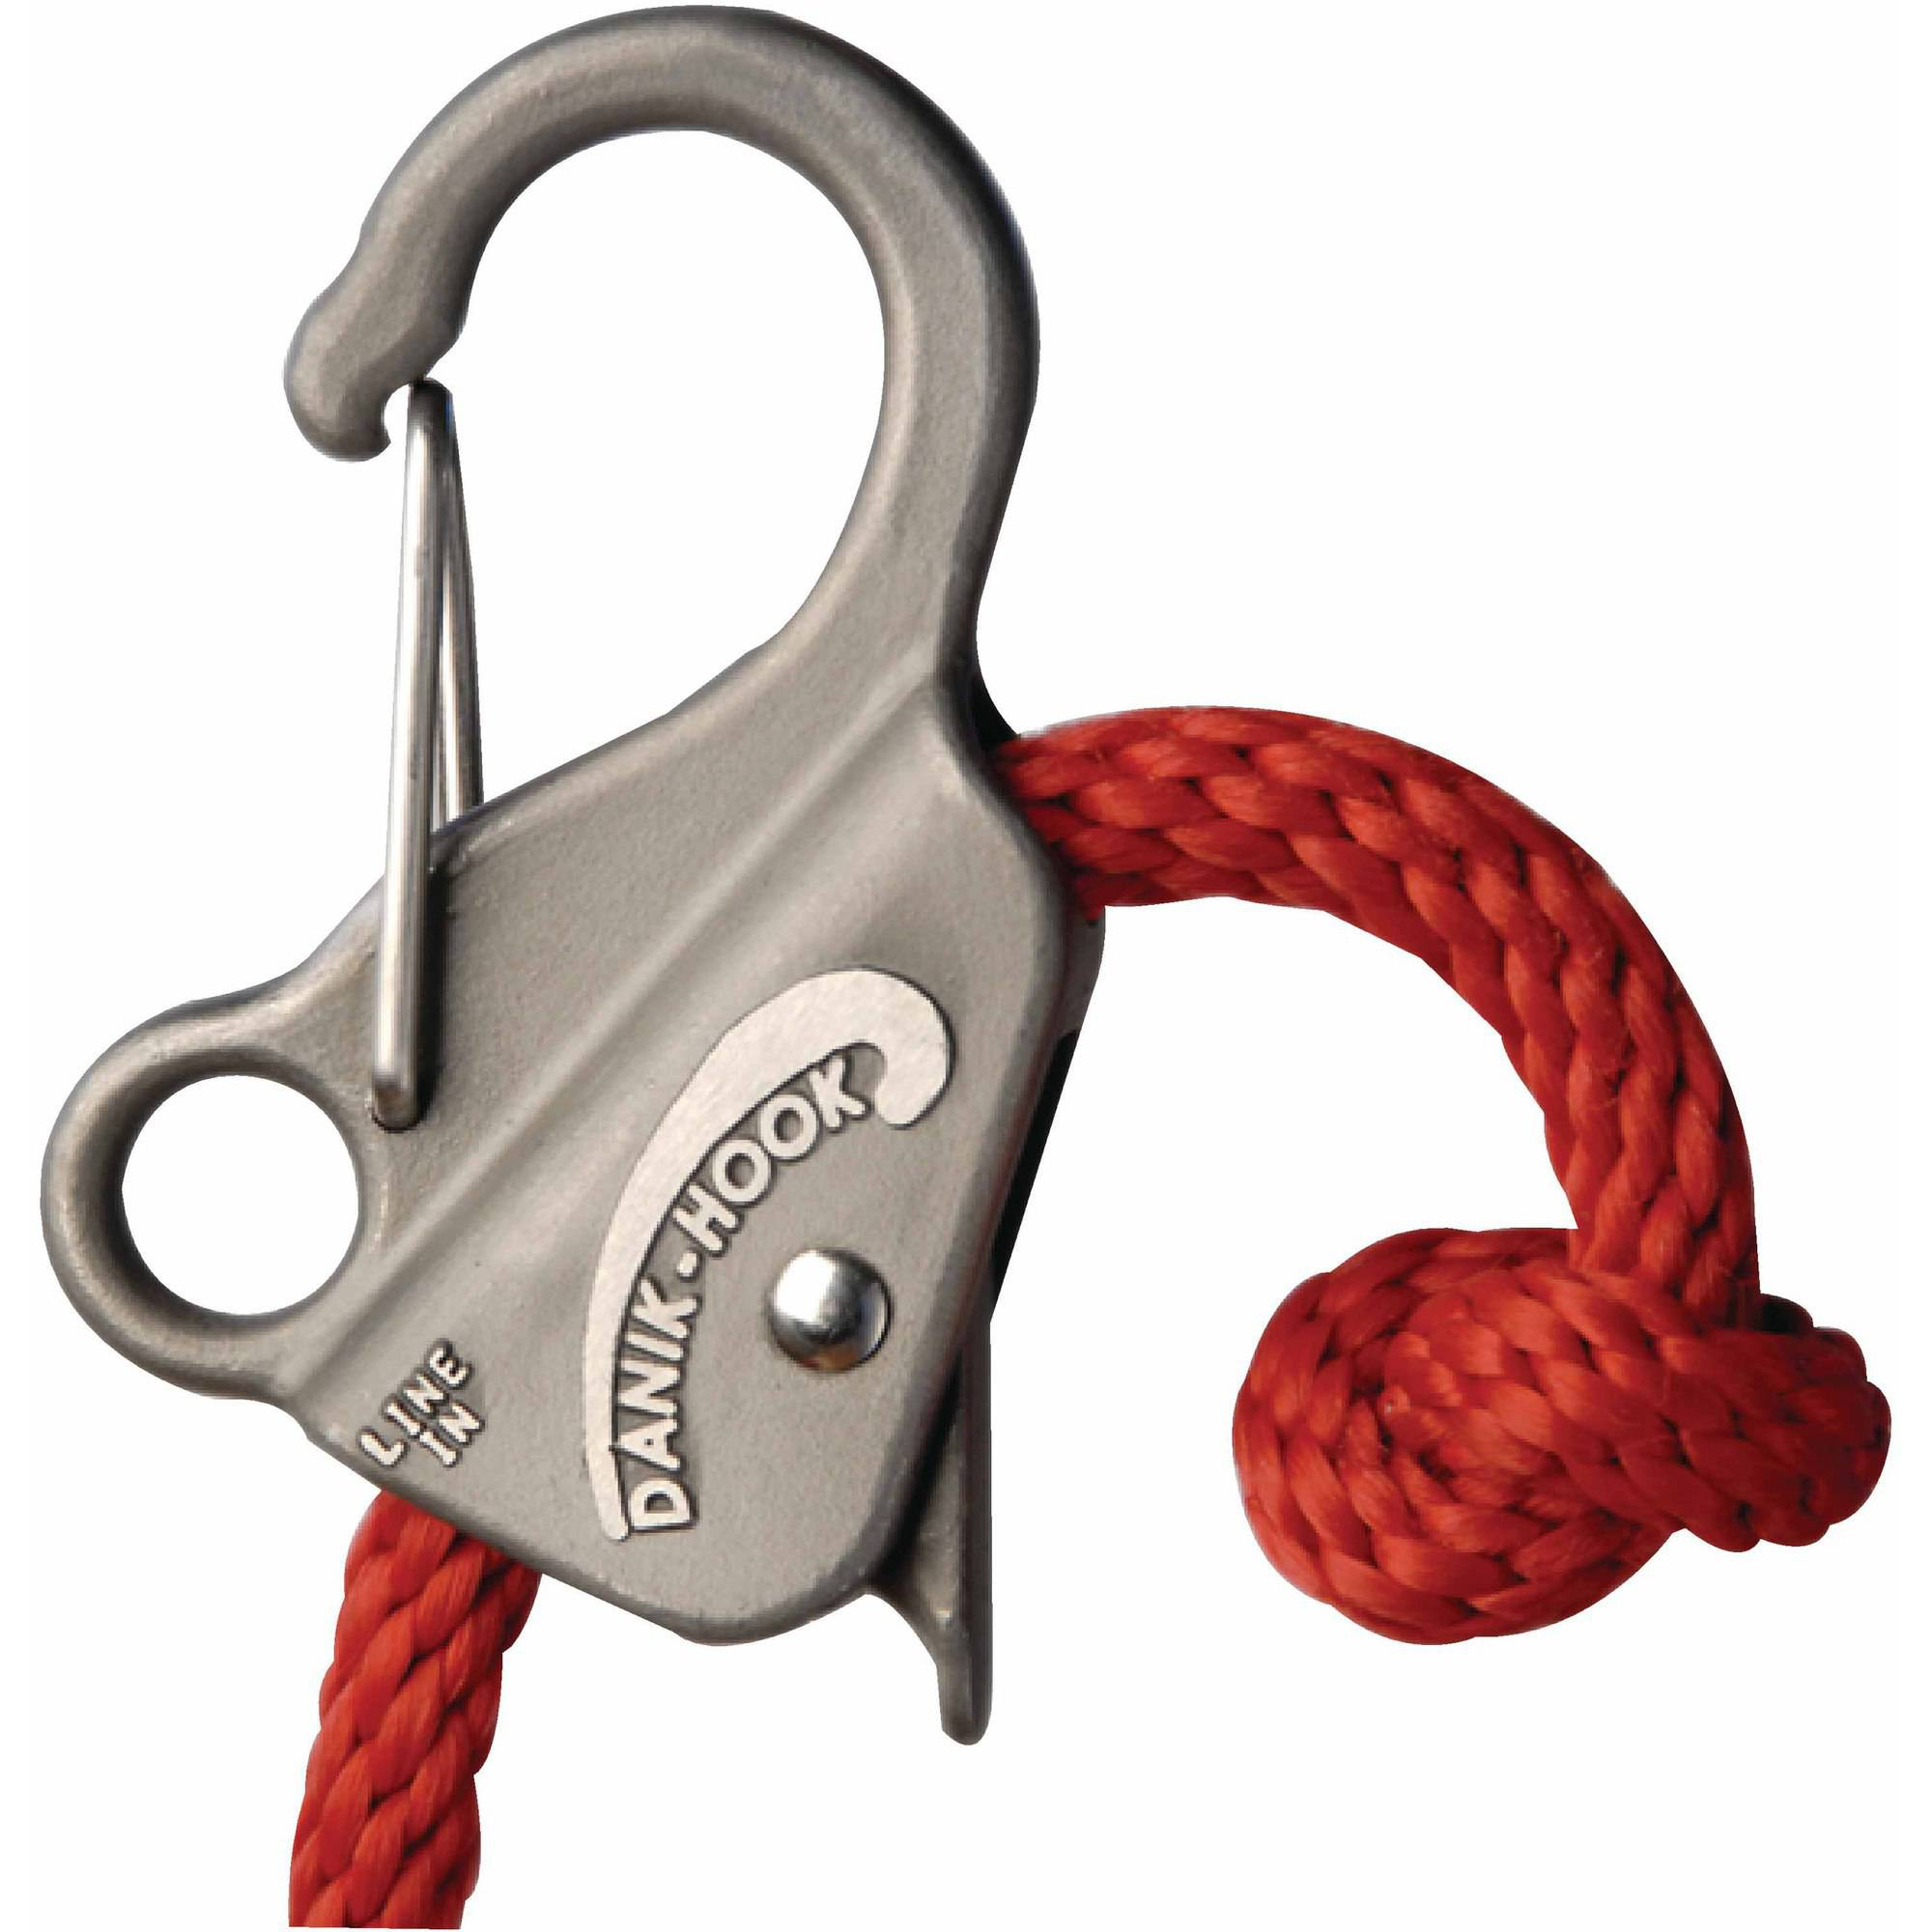 "Slide Anchor Stainless Steel Danik Hook For 3/8"" to 5/8"" Line, Holds Up to 8,000 lbs"